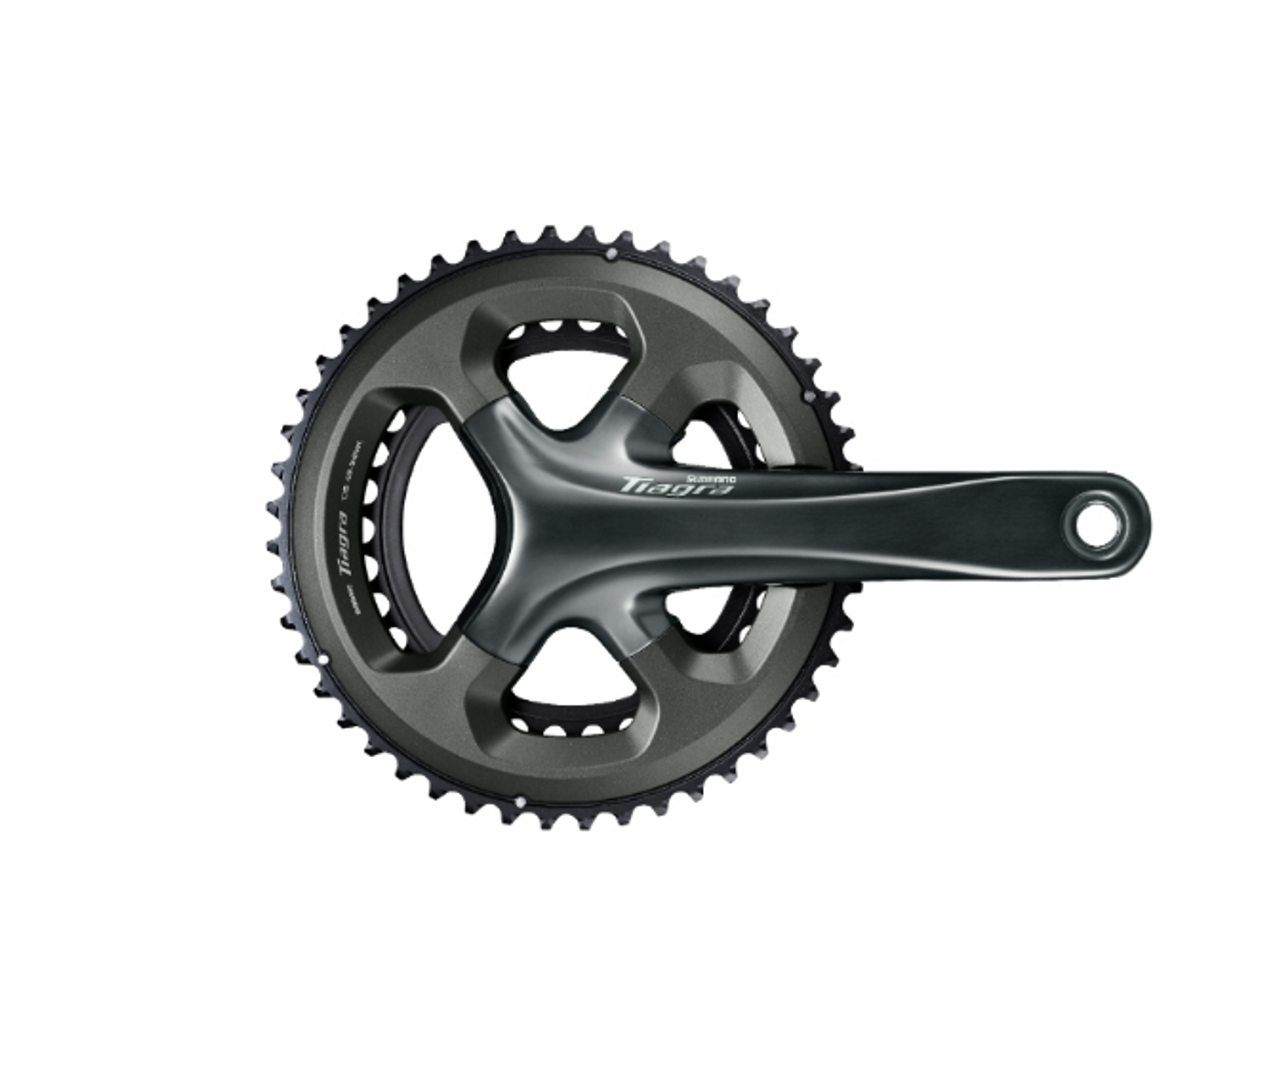 Shimano Tiagra 4700 10 Speed Double Chainset In Grey All Sizes